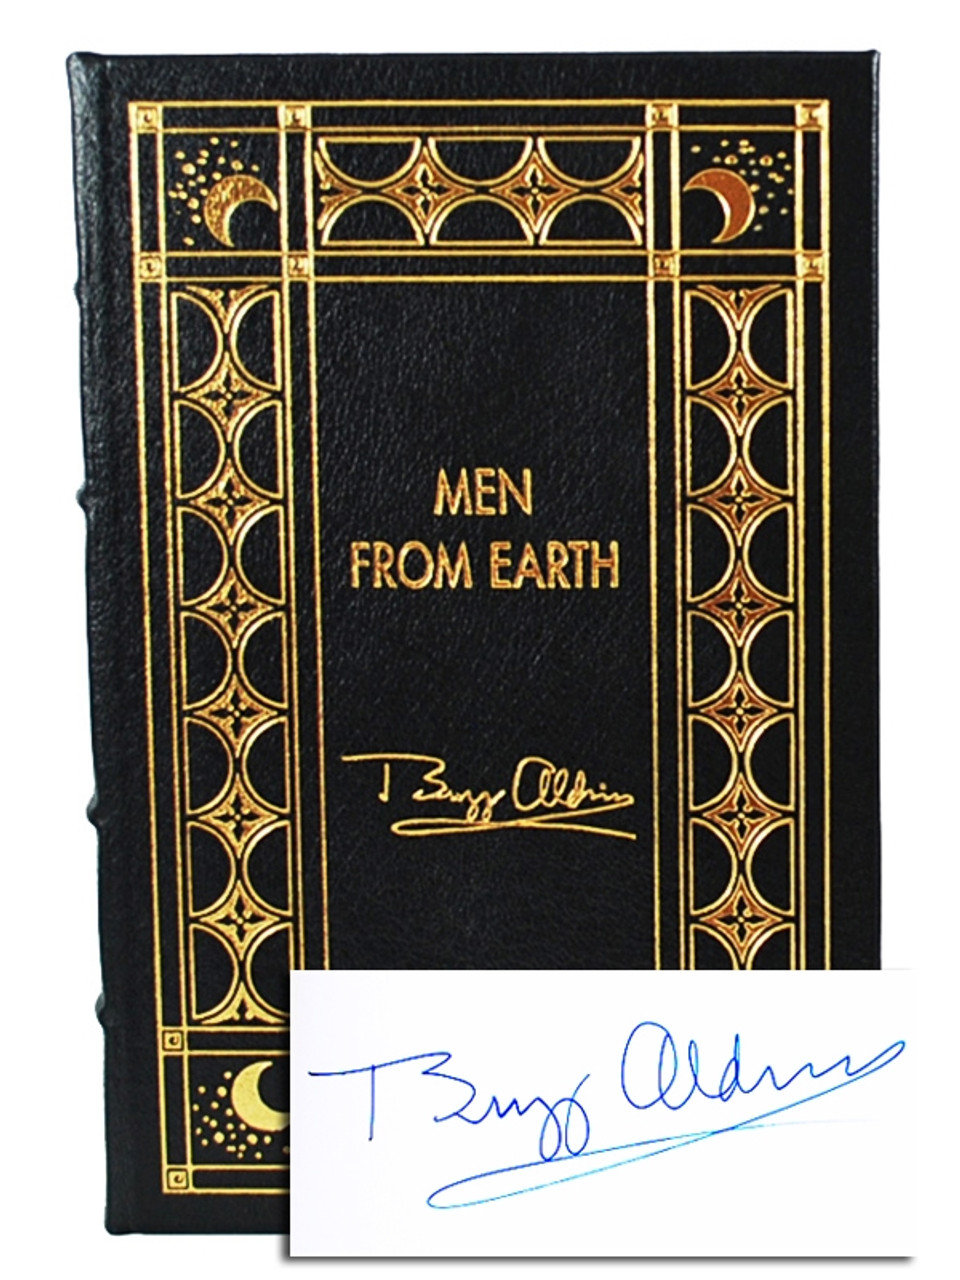 """Easton Press """"The Astronaut's Library"""" Signed Limited Edition, 7 Vols Complete Matching Leather Bound Collector's Set"""